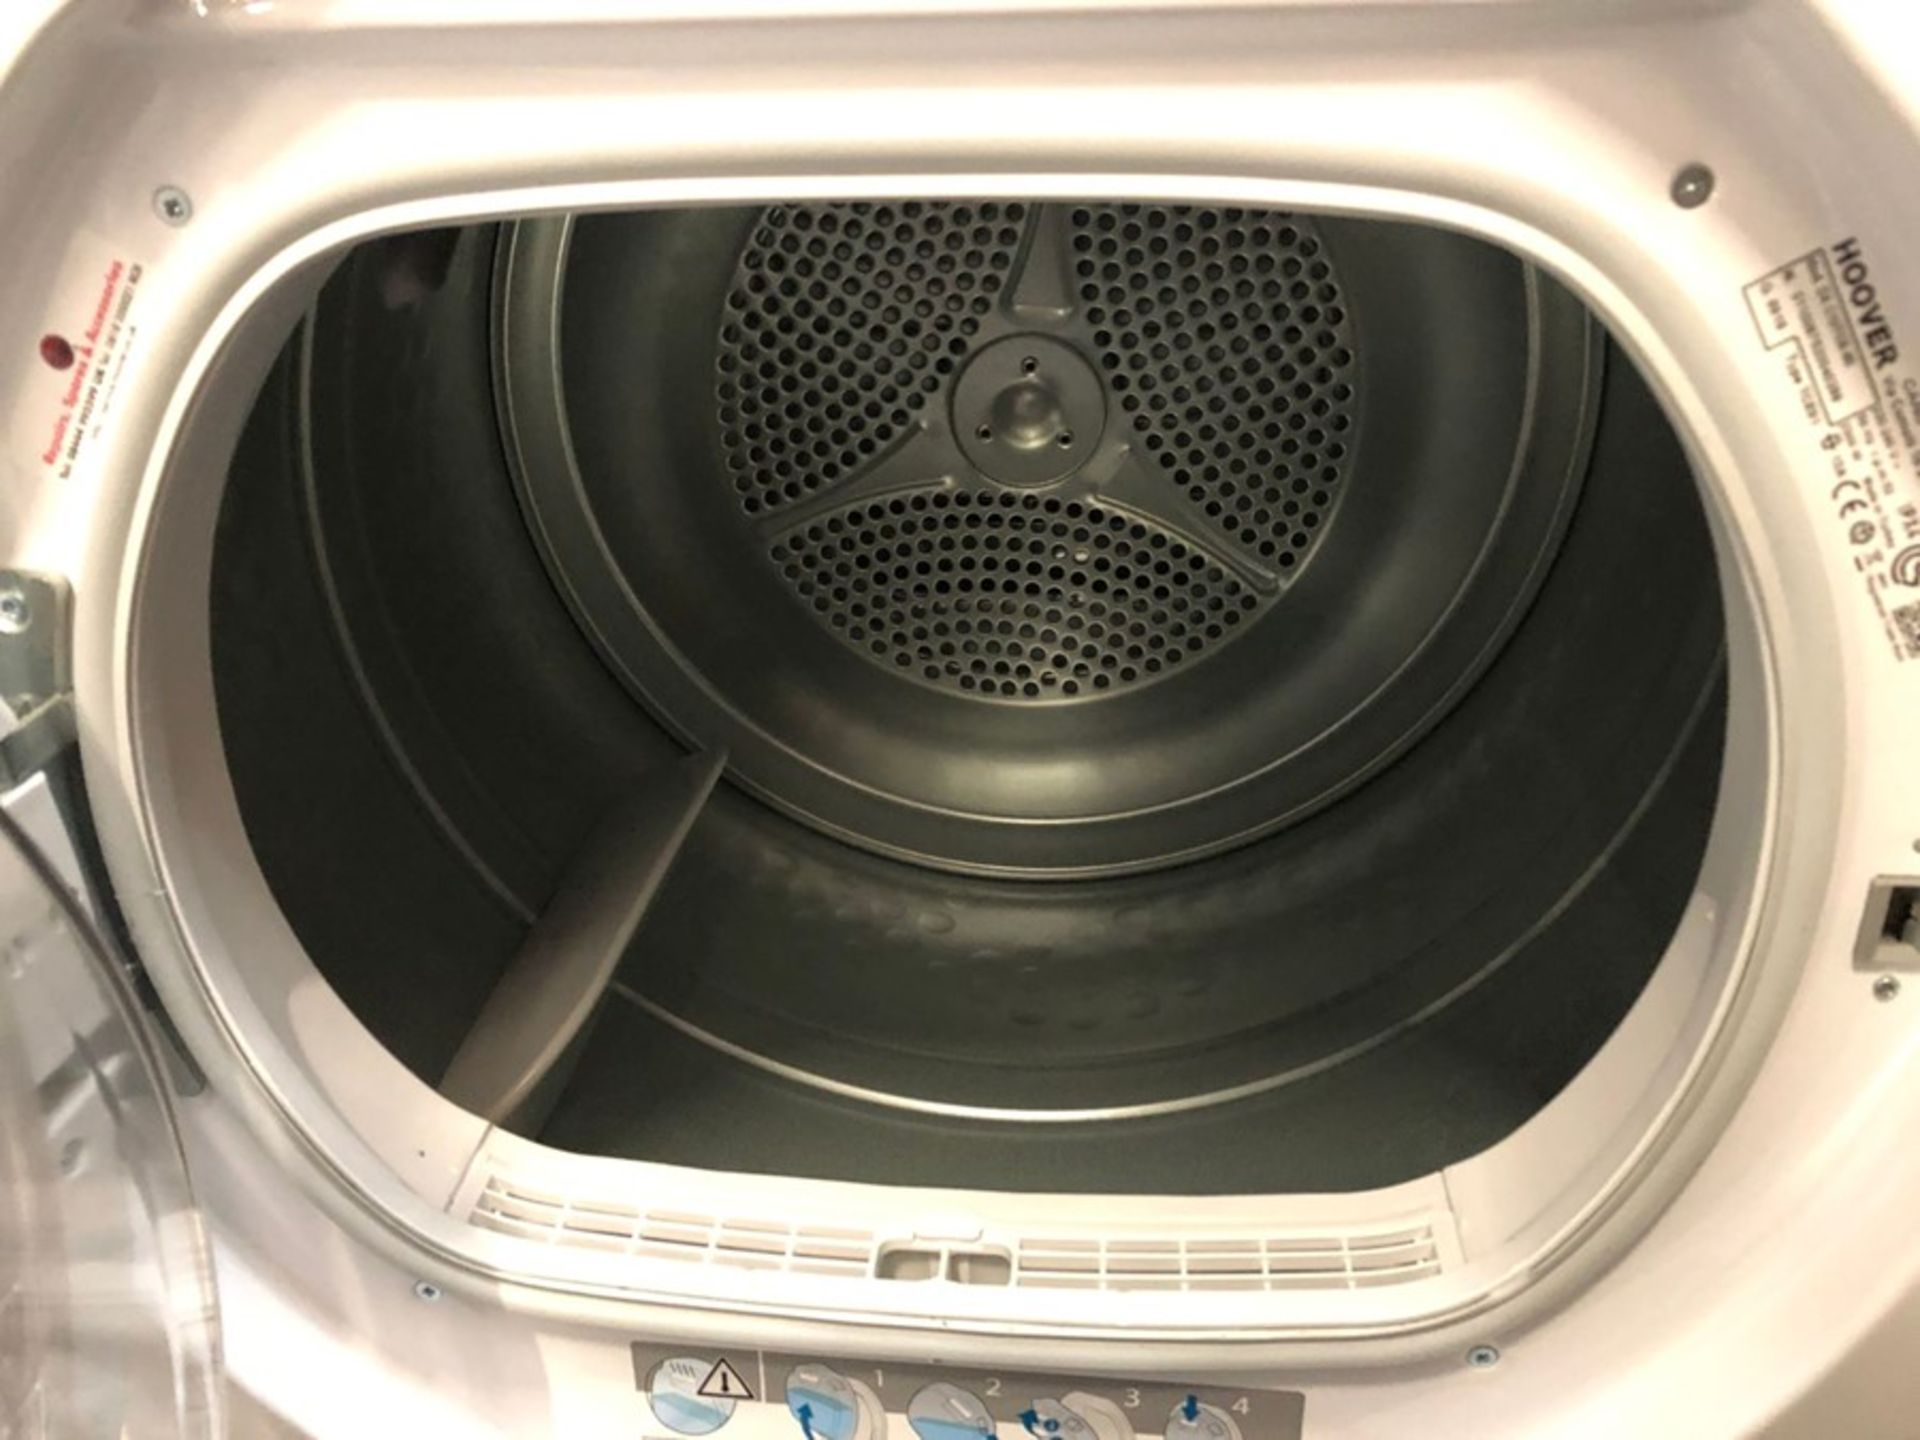 HOOVER DX C10TCE-80 CONDENSER TUMBLE DRYER - Image 2 of 2